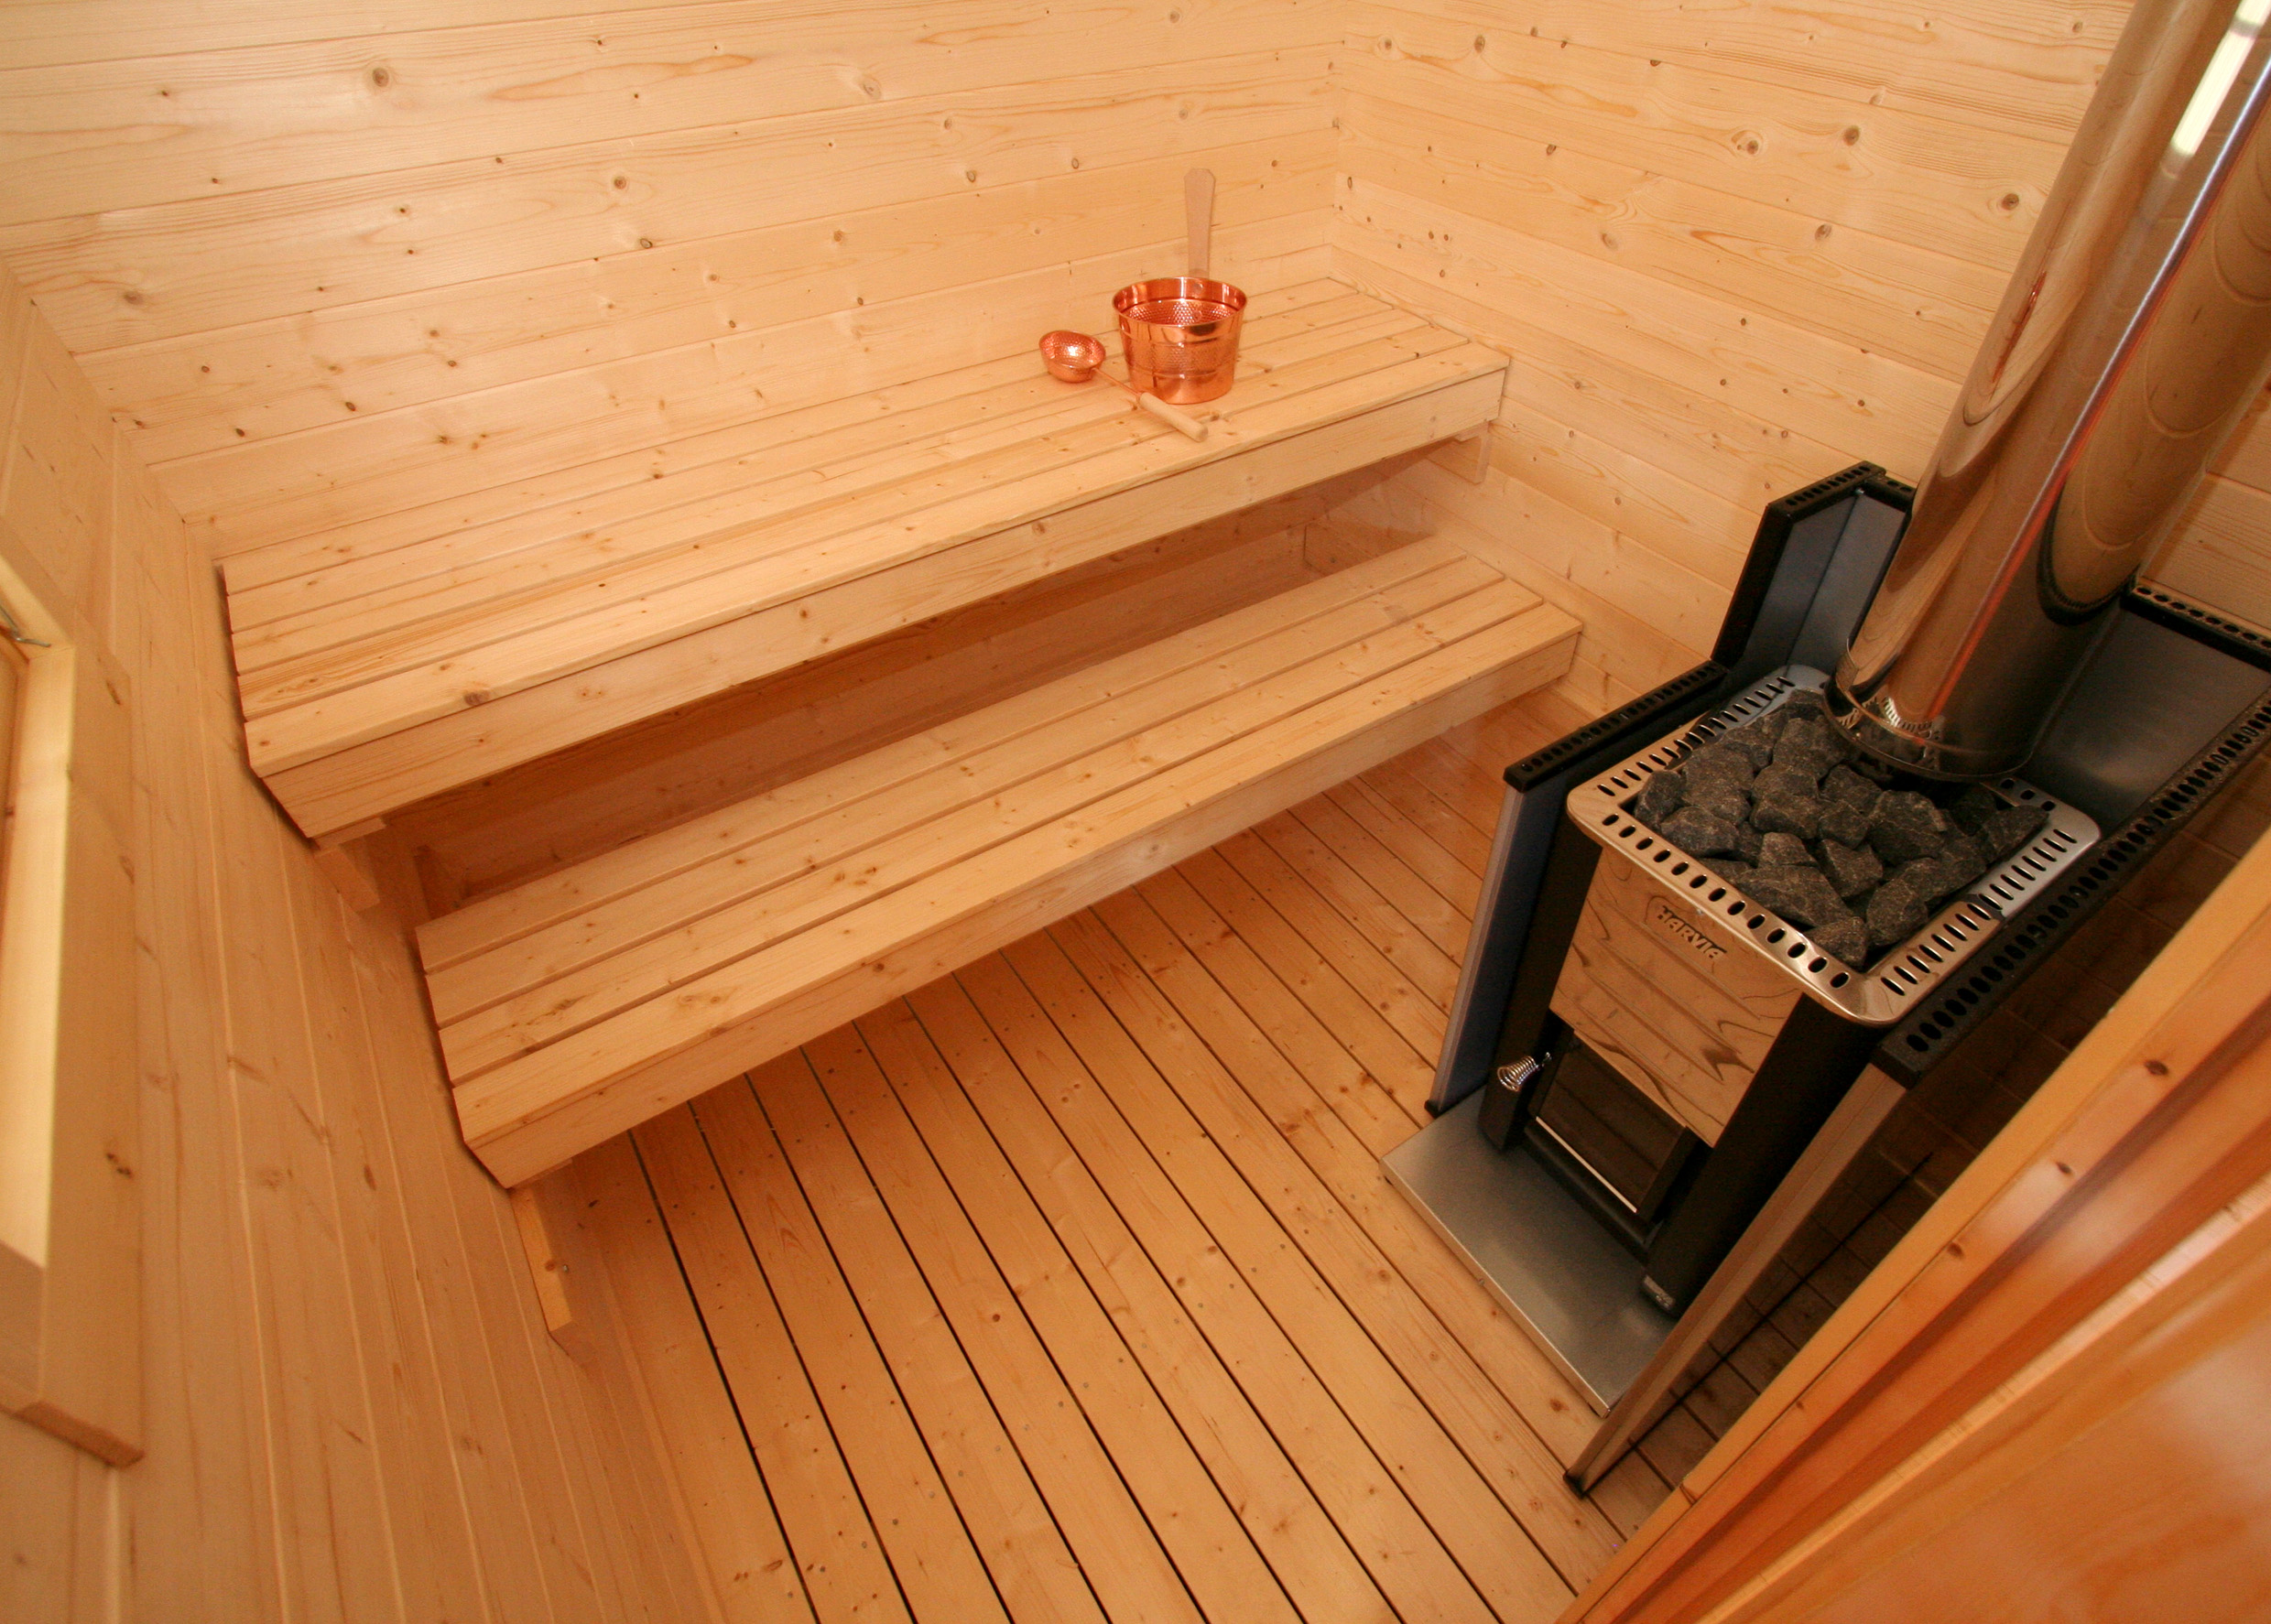 Almost Heaven Saunas Launches The Allegheny A New Wood